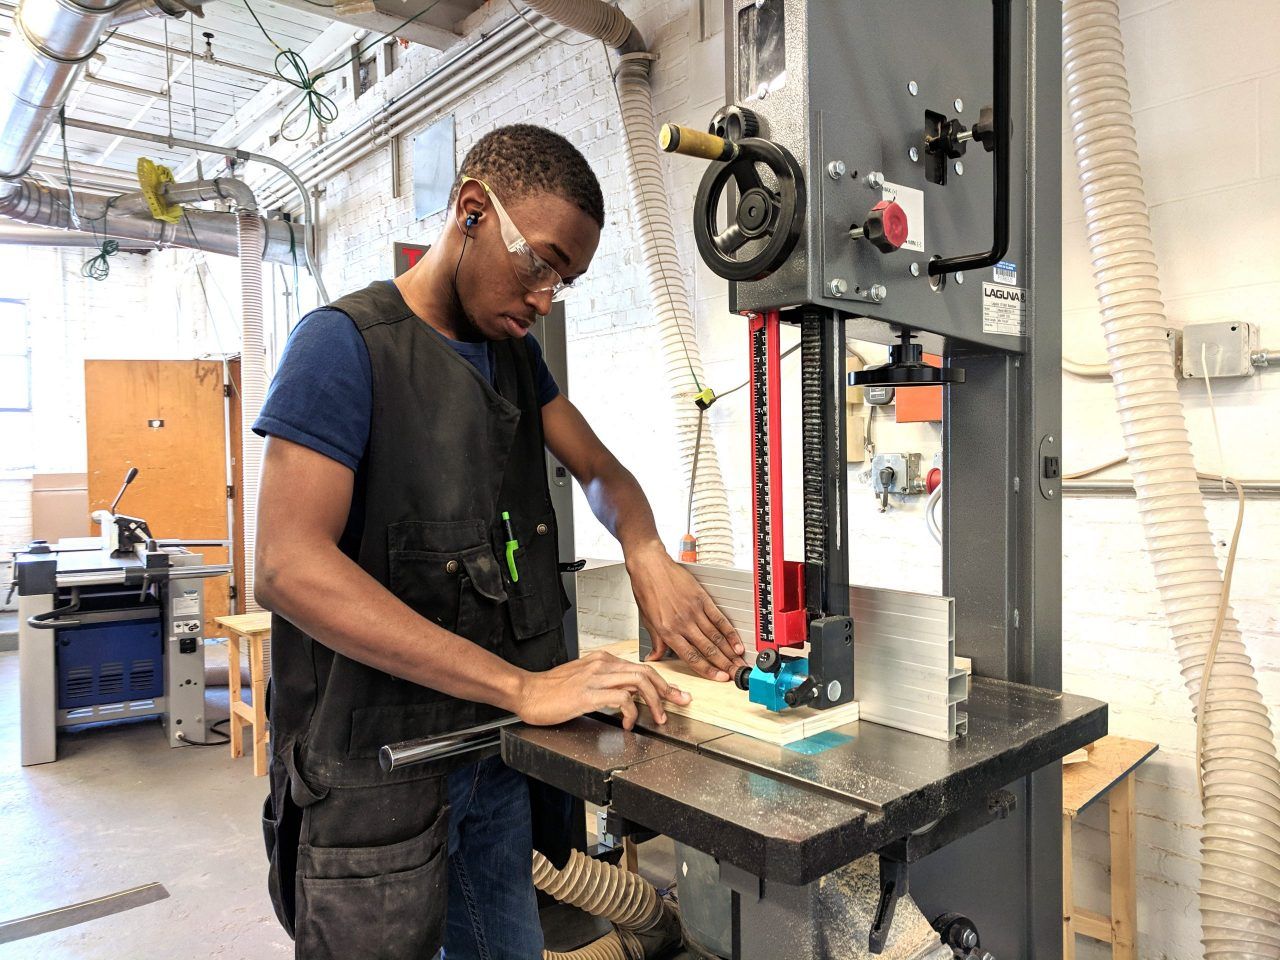 Student using a bandsaw in the woodshop